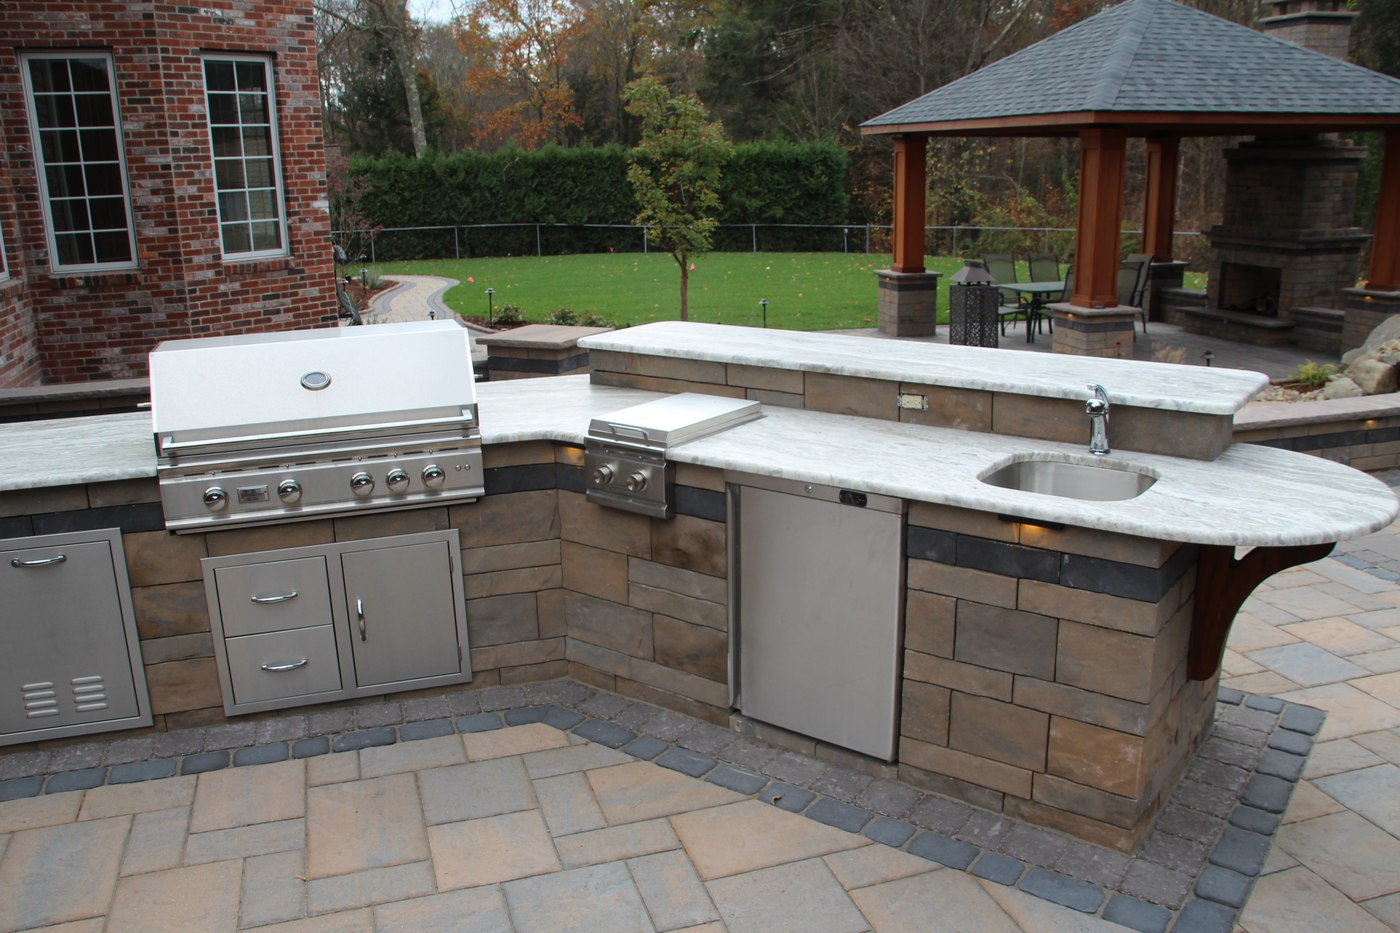 How to Use and Maintain your Built-In Grill